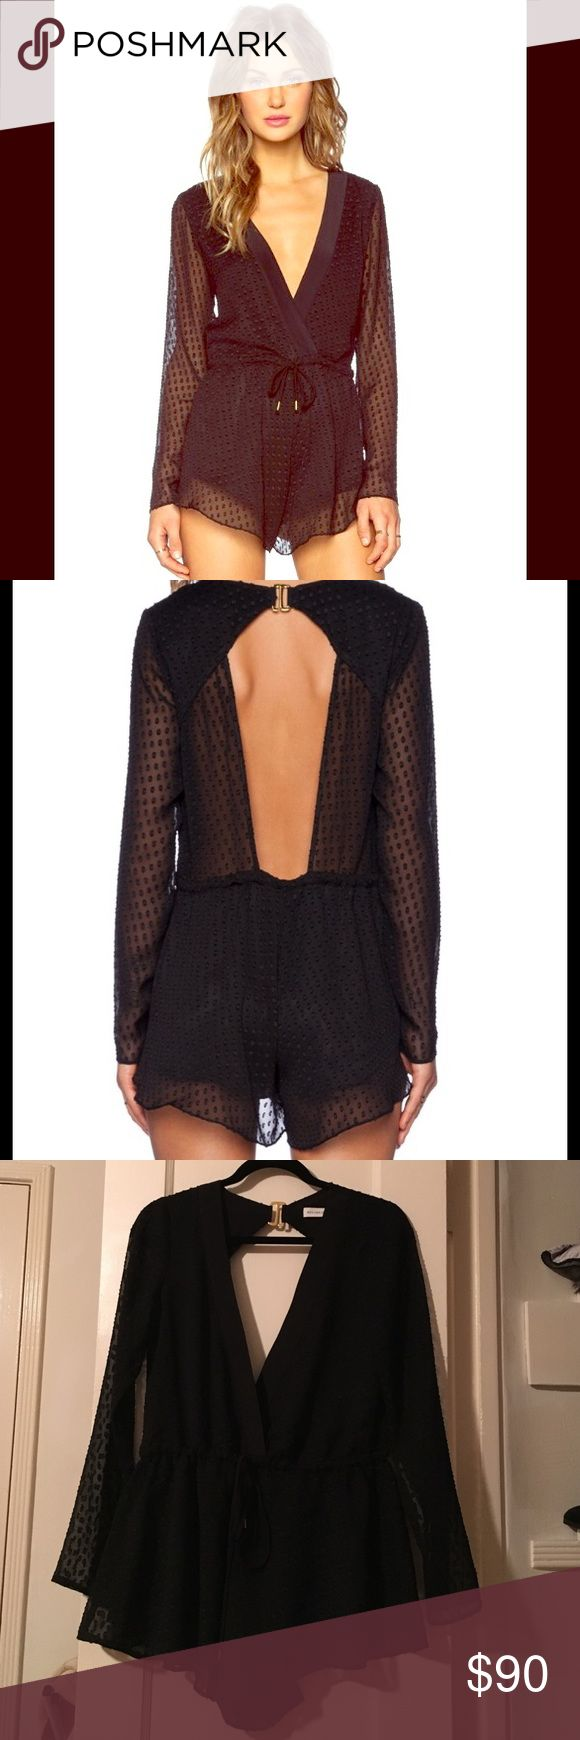 New! Bec & Bridge Black Nyx Long-Sleeved Playsuit This black super sexy and cute Playsuit is perfect for going out and special occasions. It has a deep v-neck, open back, and sheer lace sleeves. Bec & Bridge Dresses